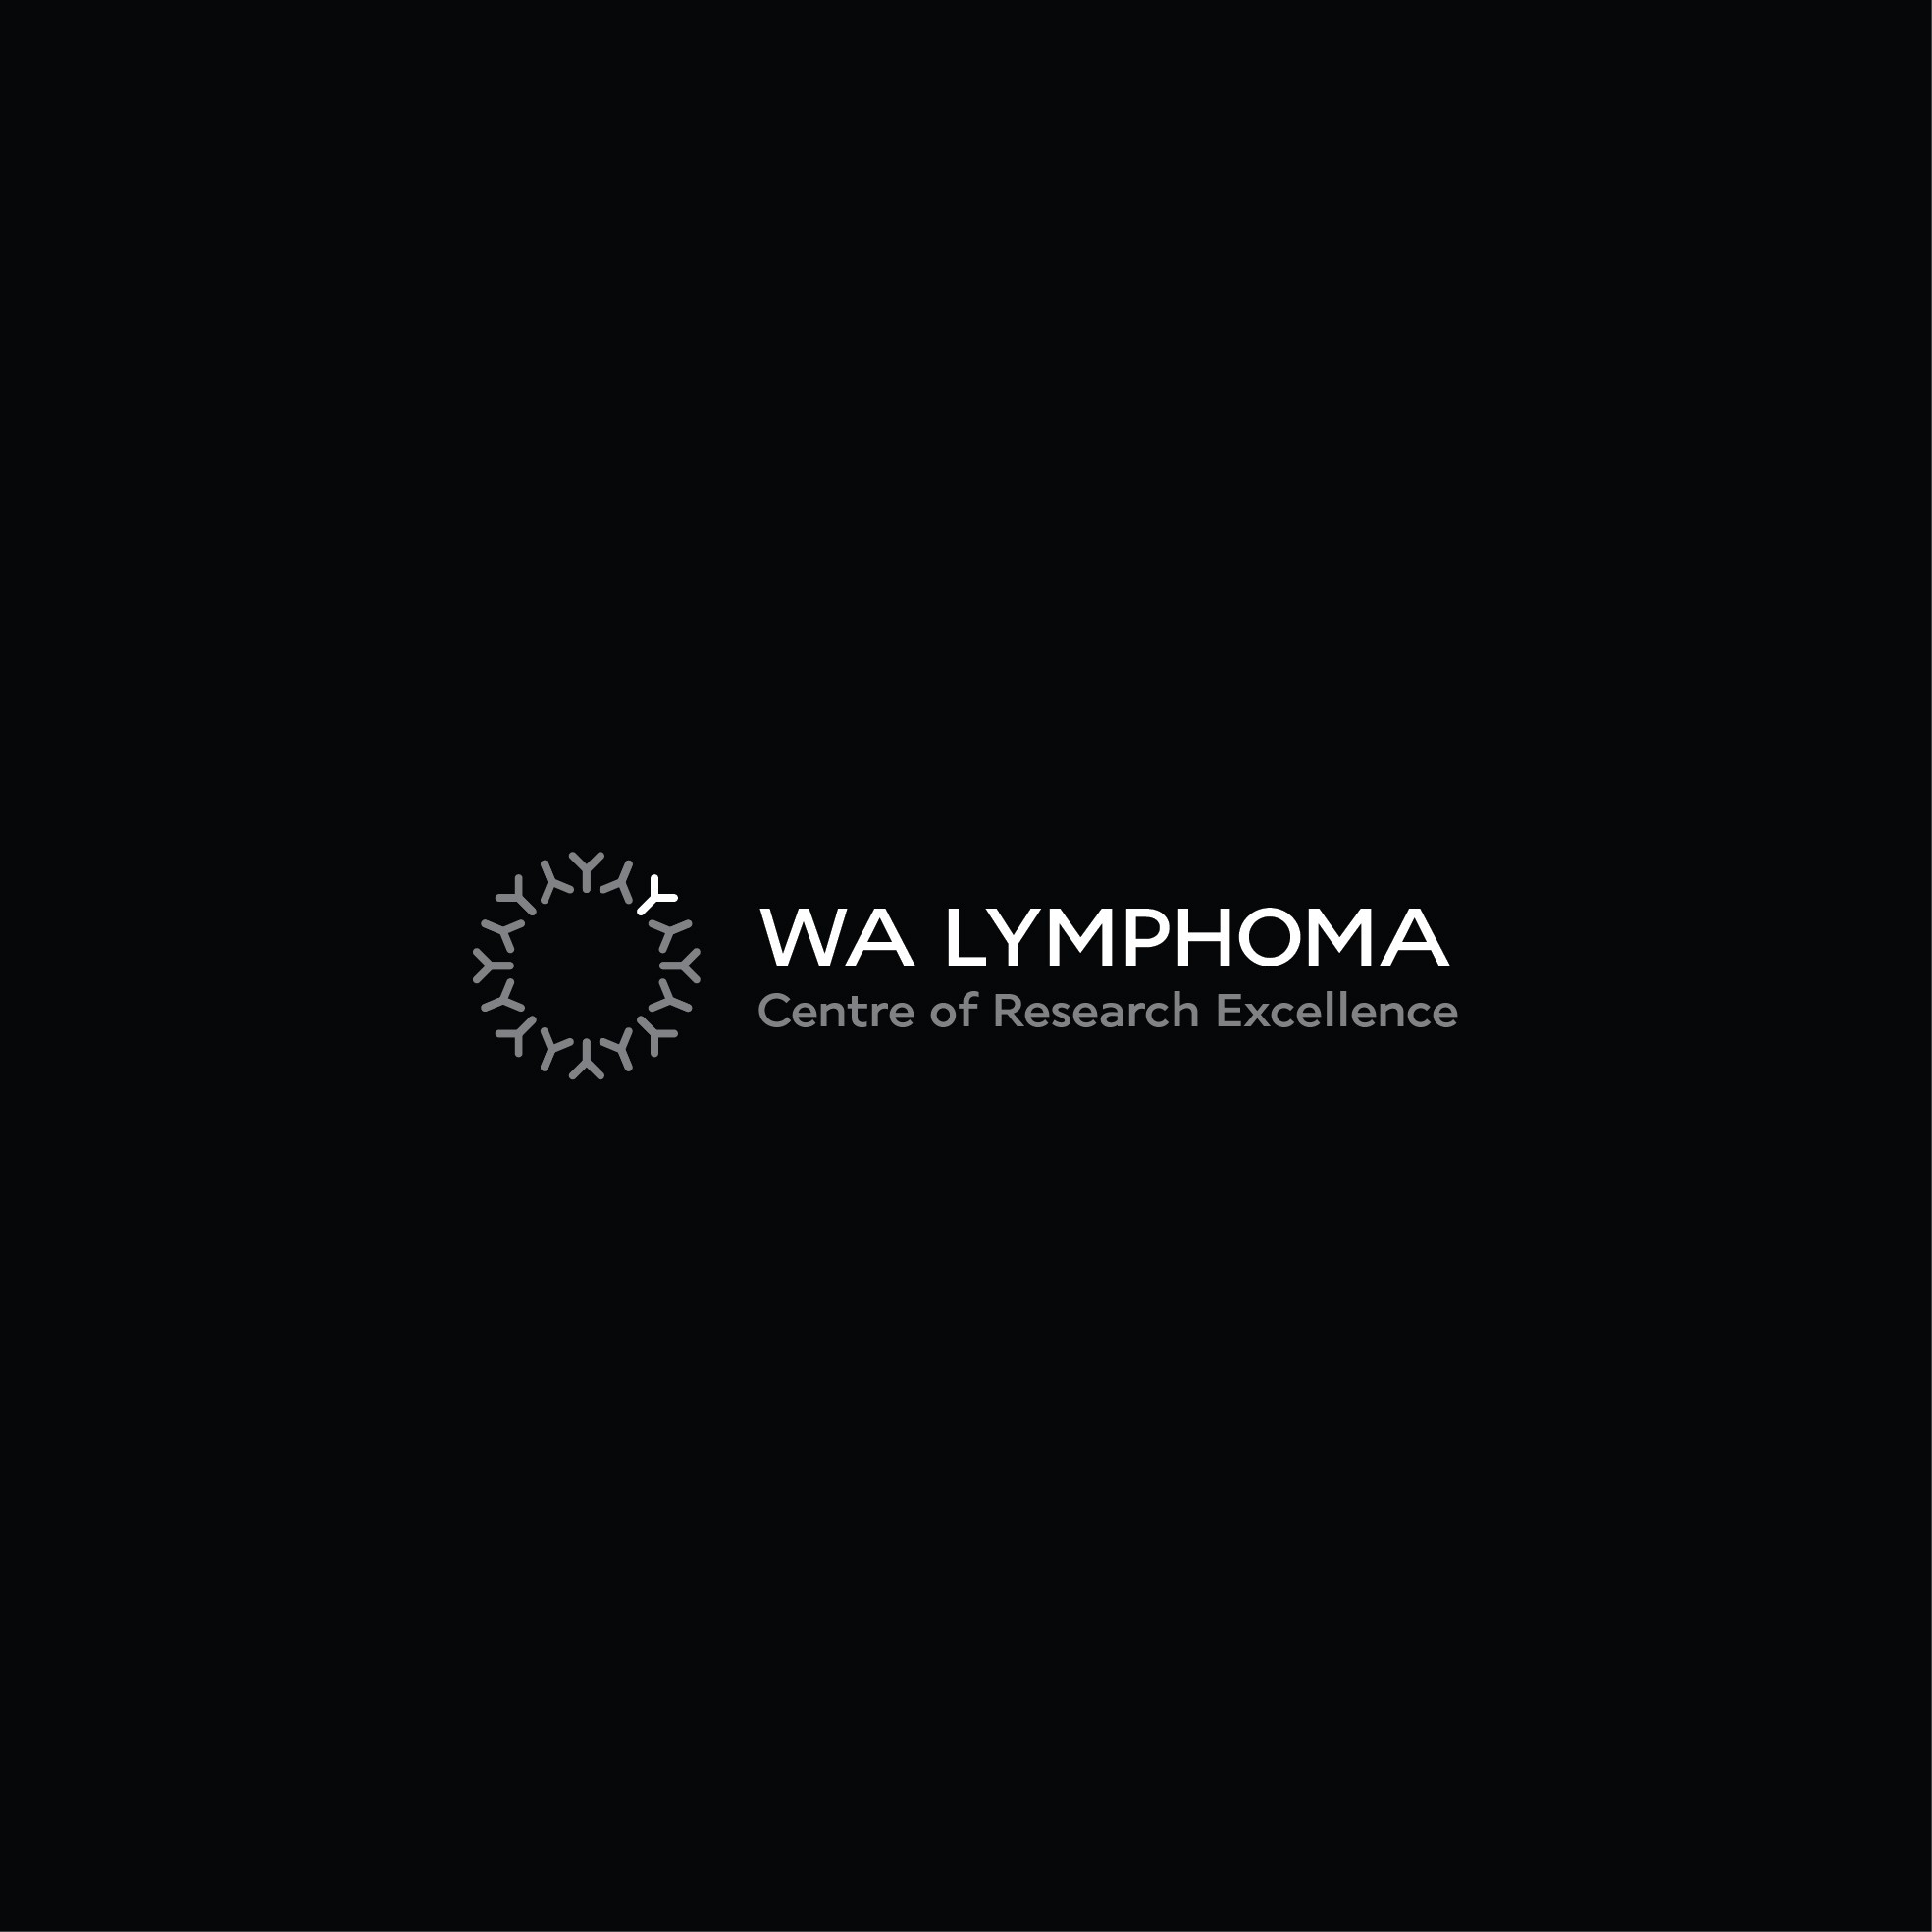 Blood Cancer Research WA